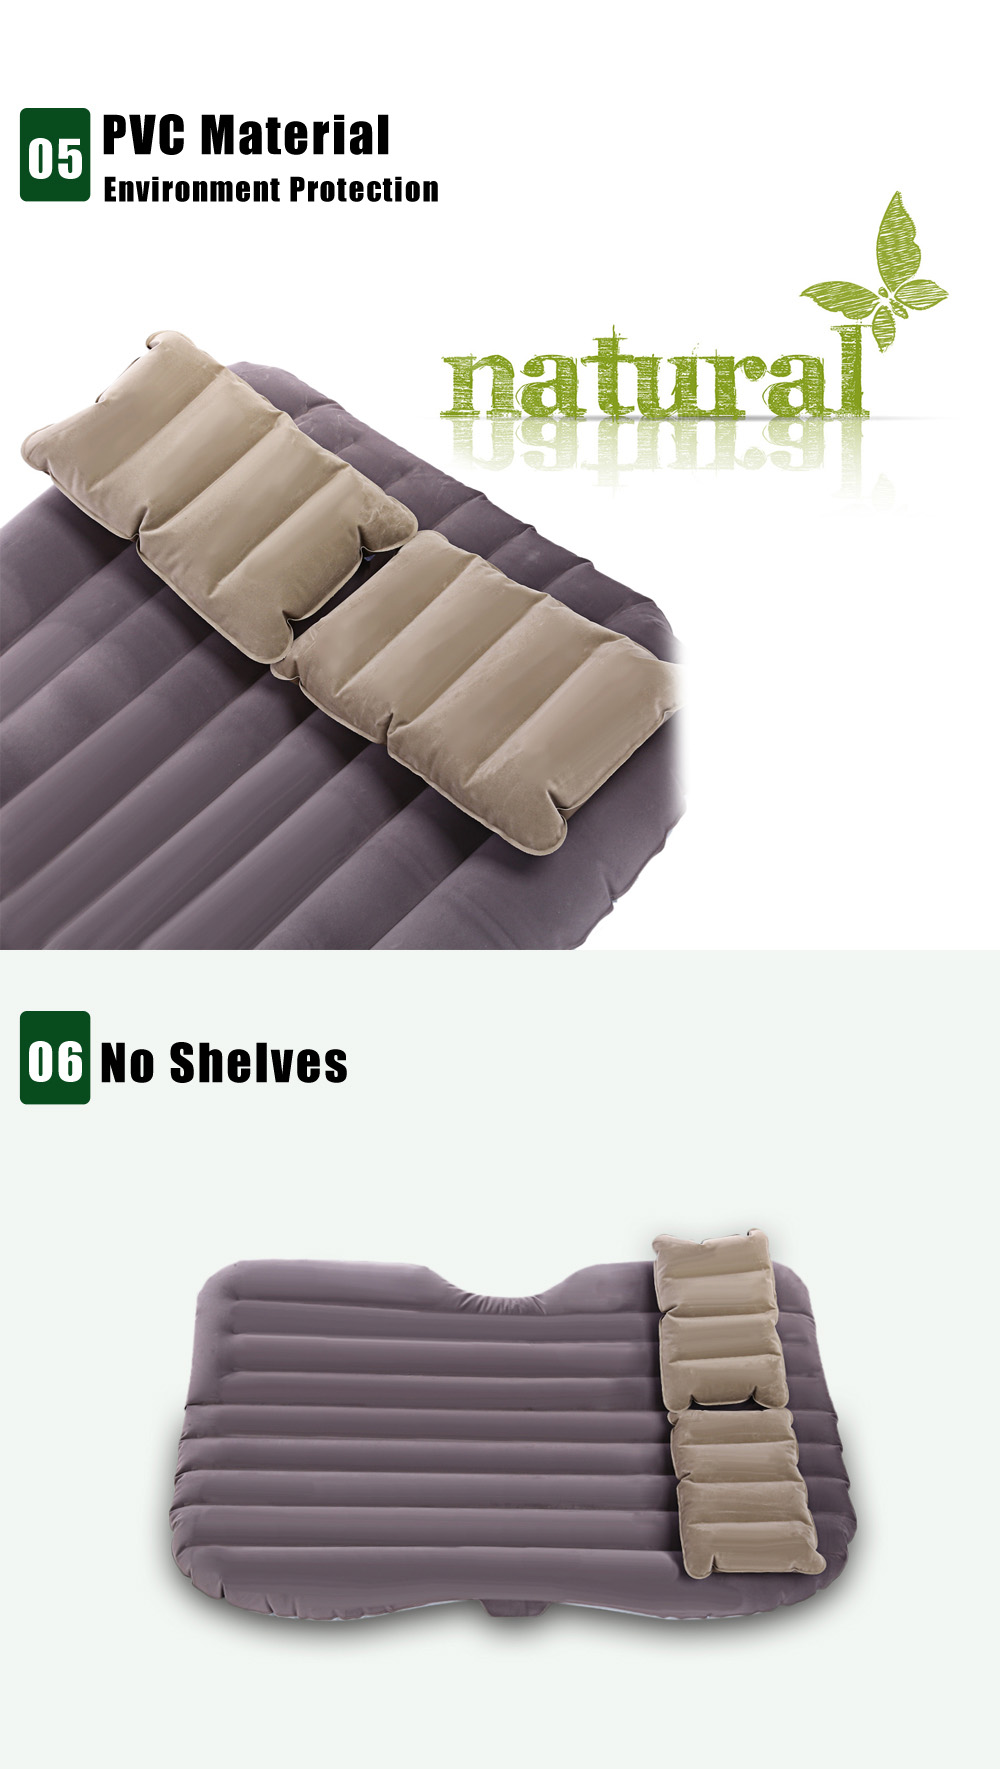 Drive Travel Universal Car Air Inflation Bed Comfortable Airbed Environmental Material Wave Design